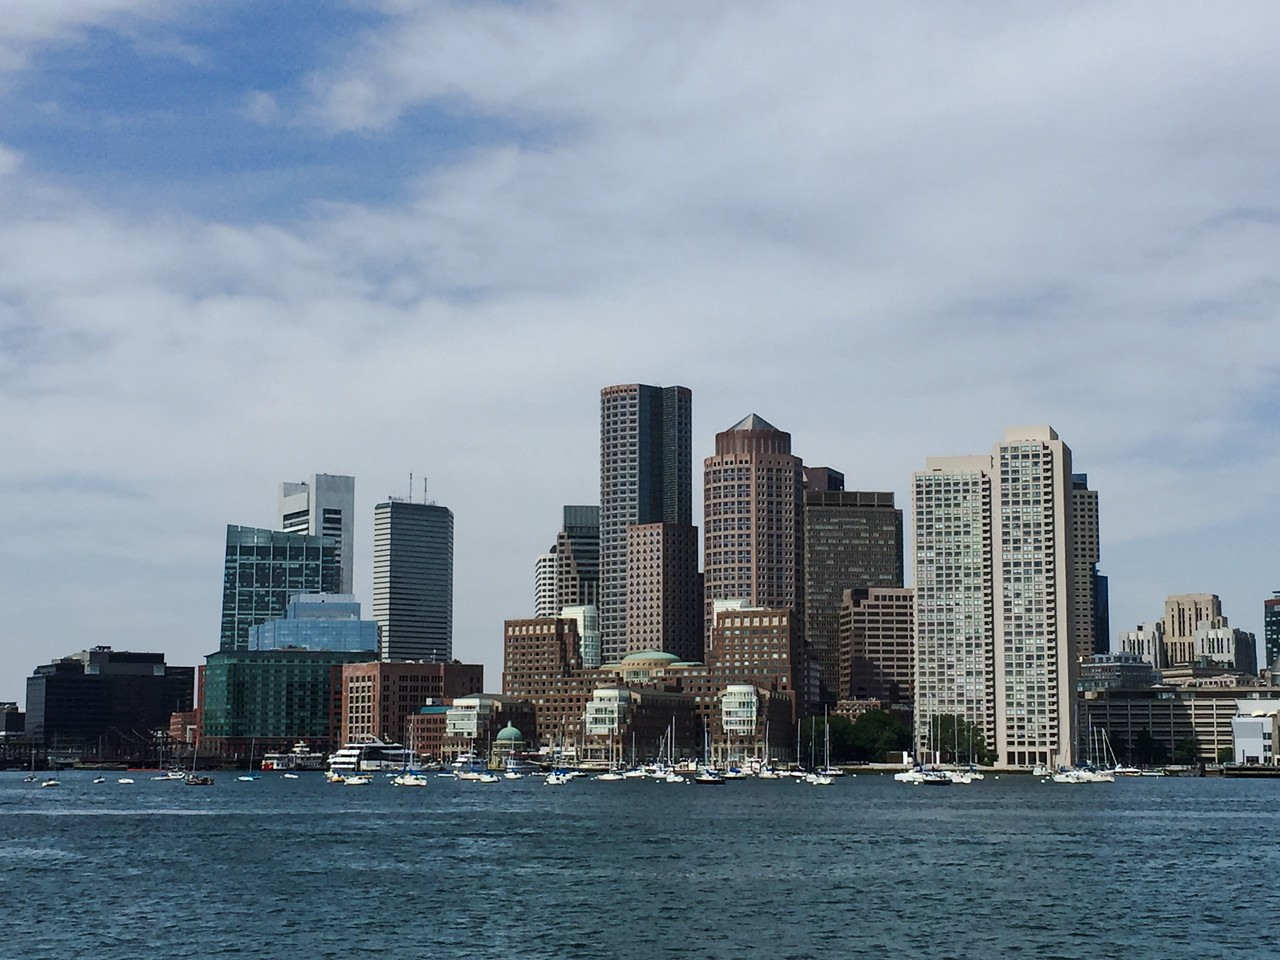 Rowes Wharf and Boston skyline from the Harbor